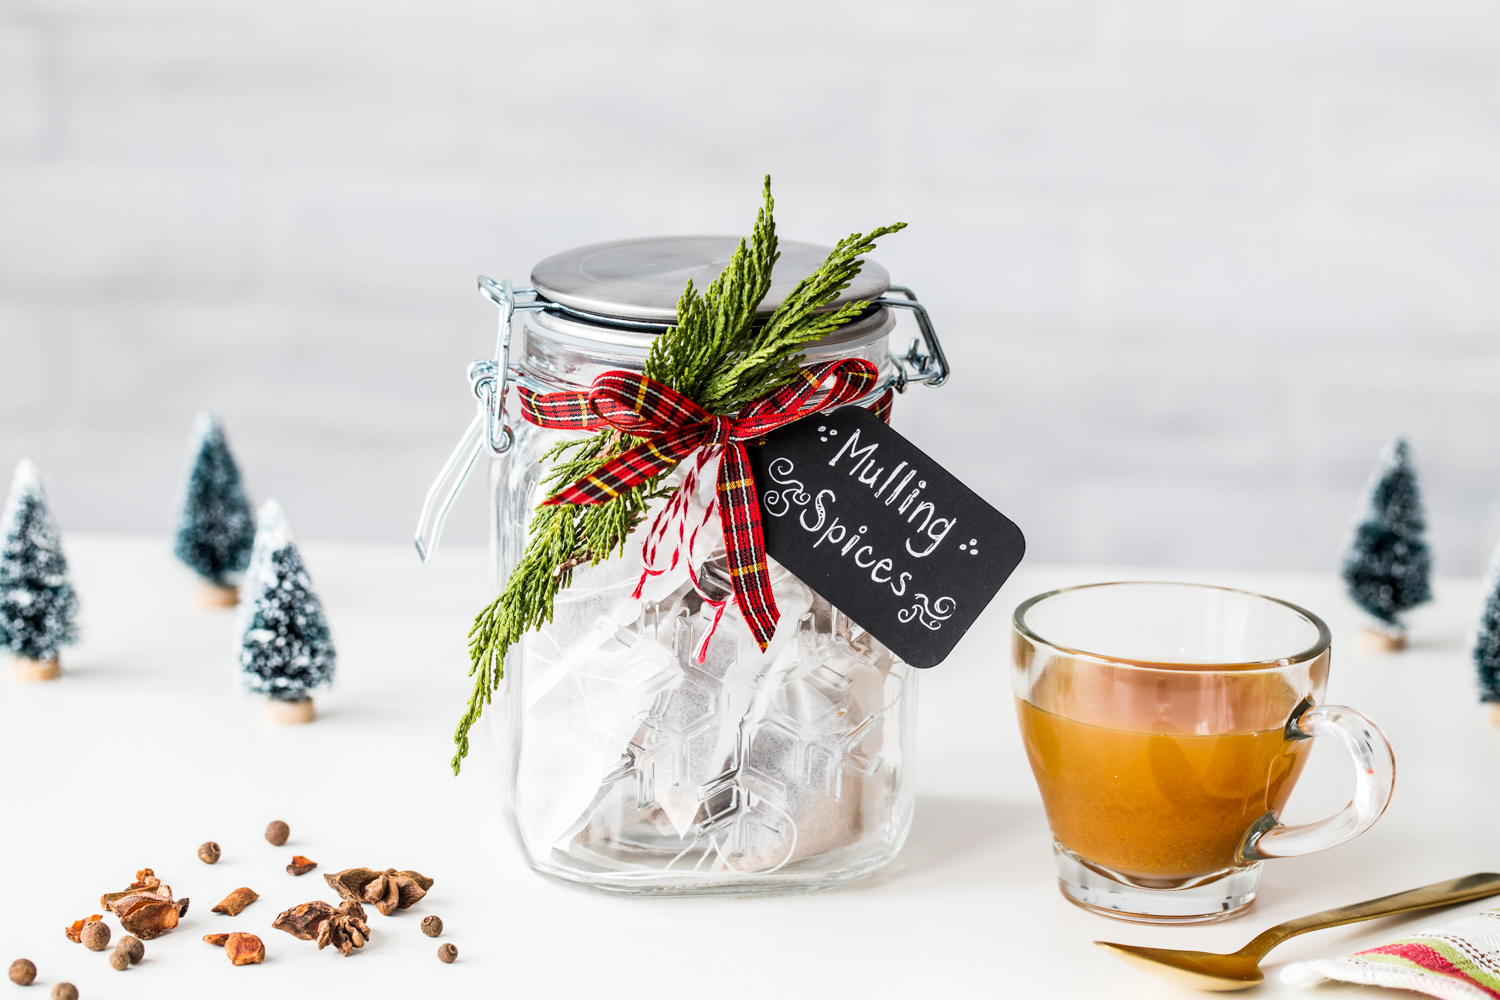 DIY Homemade Mulling Spices make great holiday hostess gifts